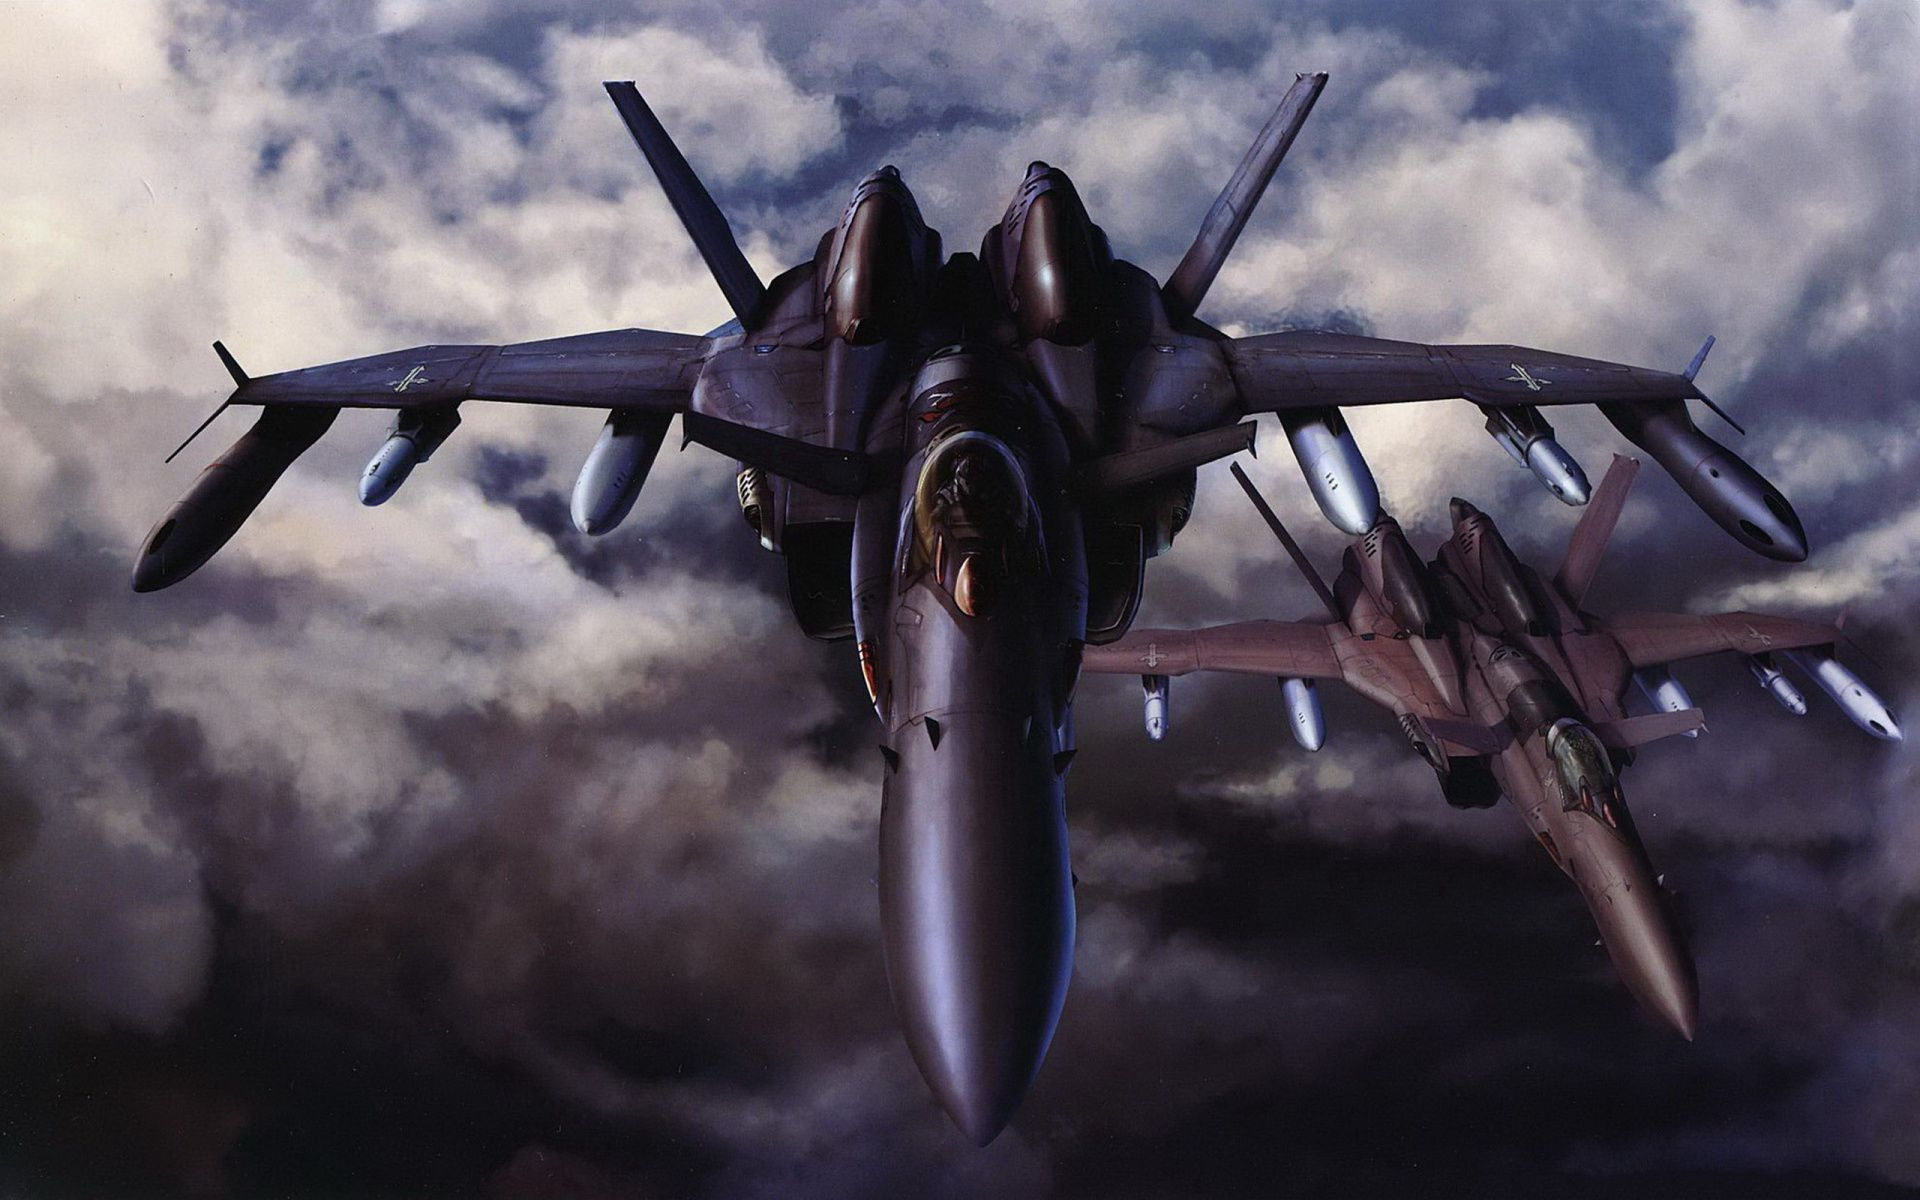 Jet fighter military aircraft hd wallpapers in hd hd wallpapers jet fighter military aircraft hd wallpapers in hd voltagebd Choice Image